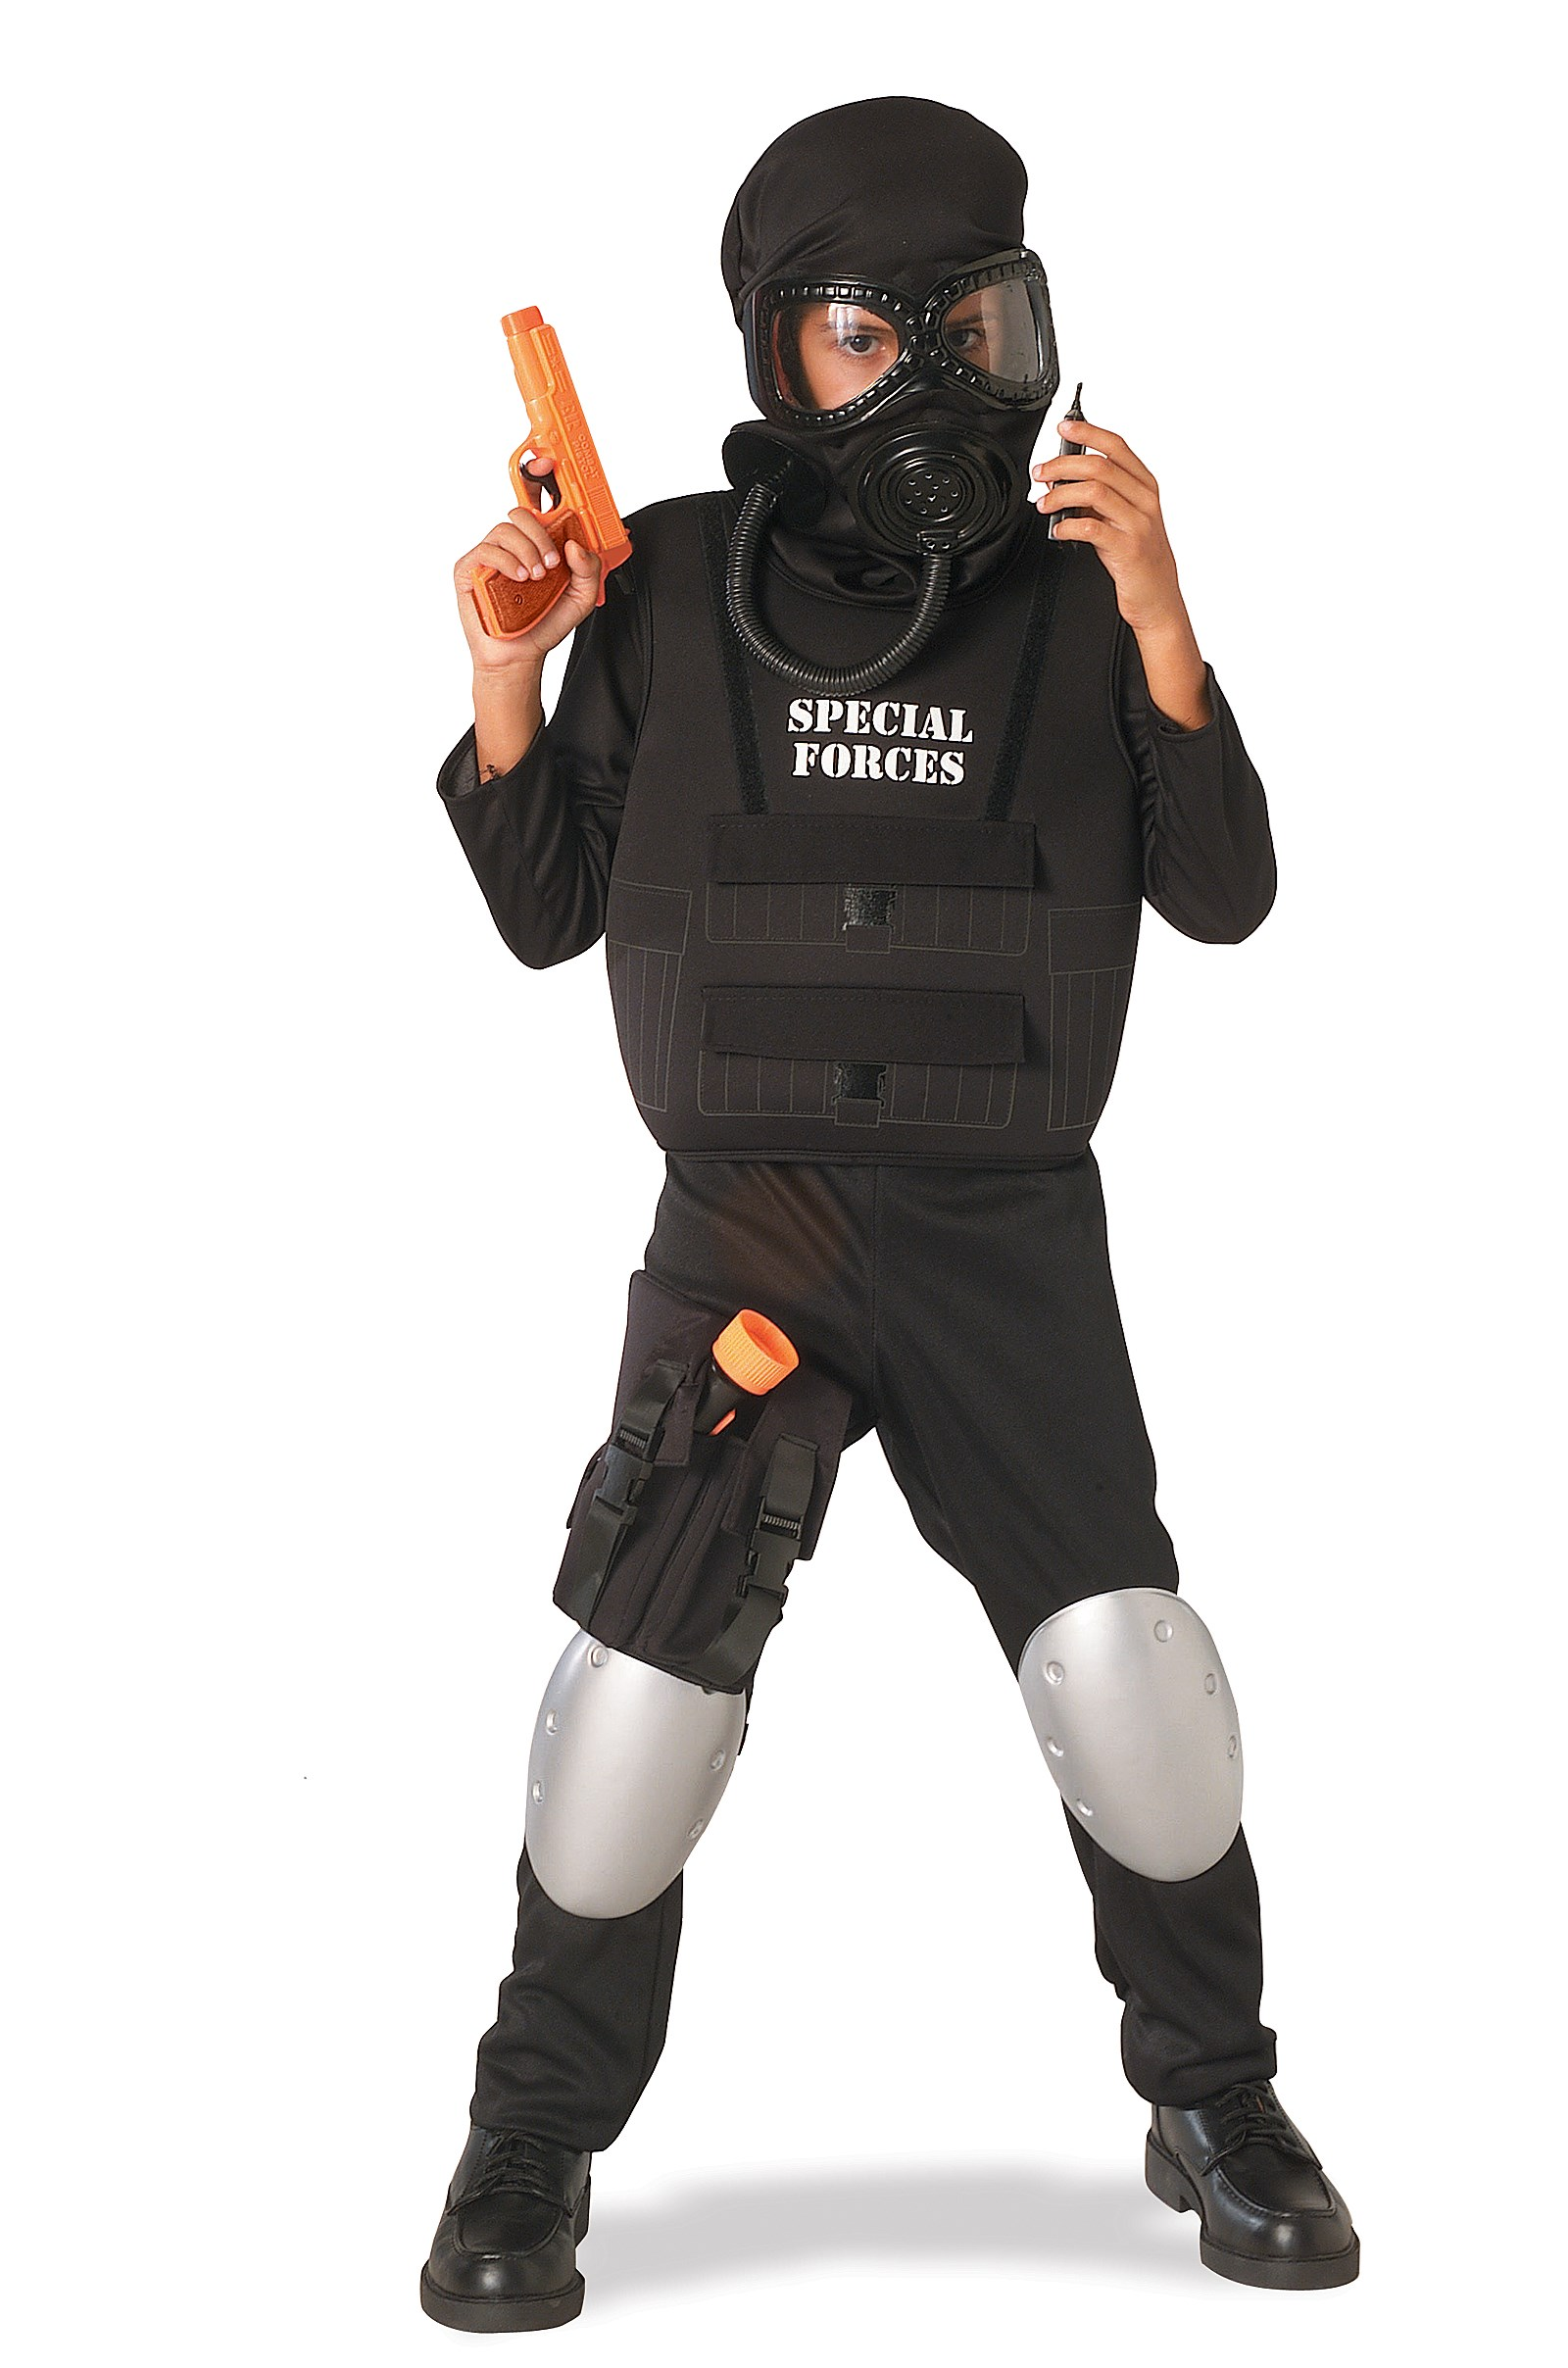 Special Forces Officer Child Costume 4-6